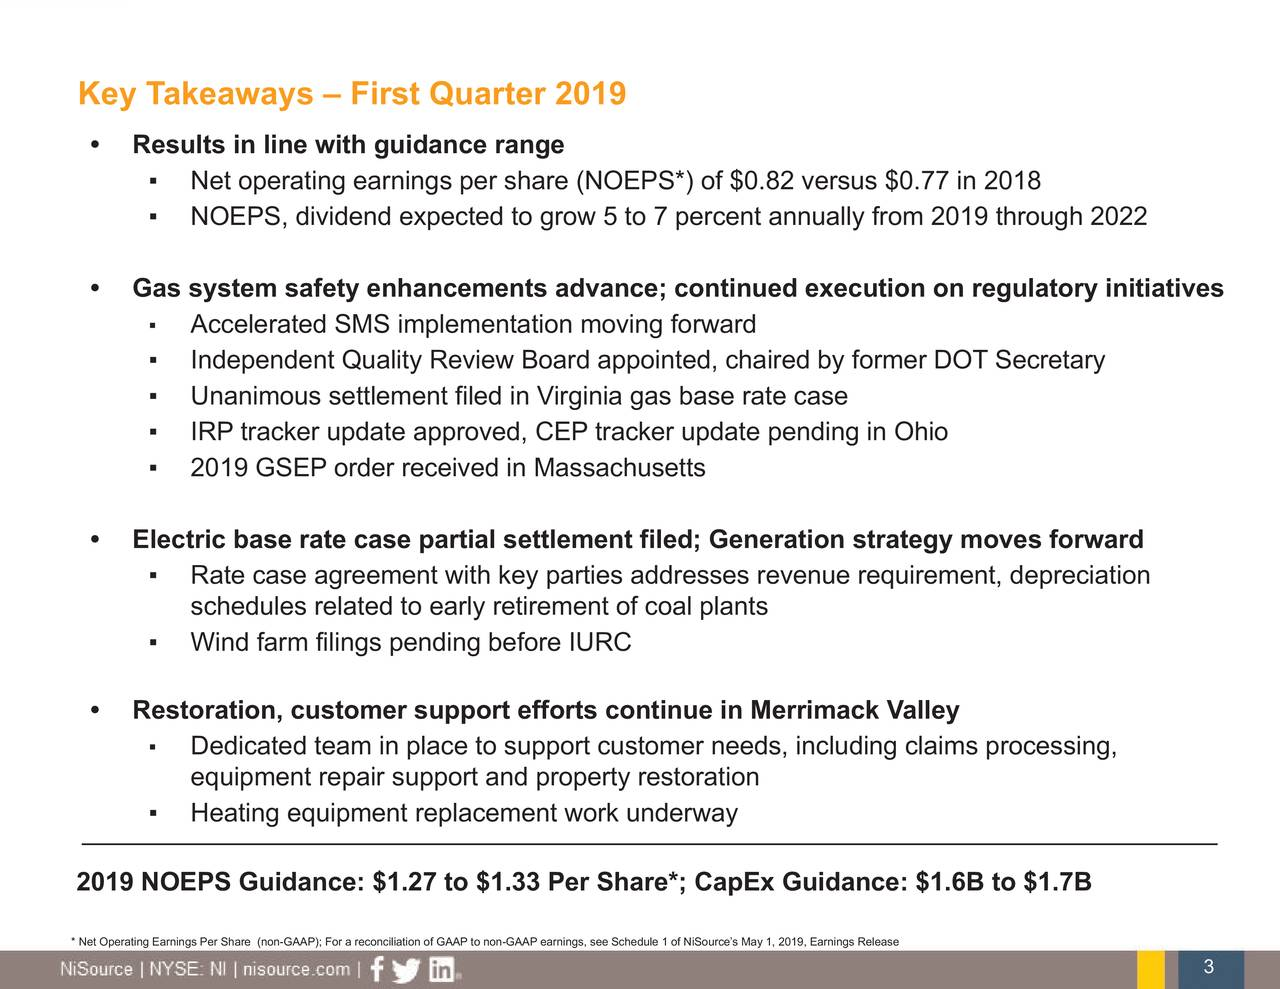 • Results in line with guidance range ▪ Net operating earnings per share (NOEPS*) of $0.82 versus $0.77 in 2018 ▪ NOEPS, dividend expected to grow 5 to 7 percent annually from 2019 through 2022 • Gas system safety enhancements advance; continued execution on regulatory initiatives ▪ Accelerated SMS implementation moving forward ▪ Independent Quality Review Board appointed, chaired by former DOT Secretary ▪ Unanimous settlement filed in Virginia gas base rate case ▪ IRP tracker update approved, CEP tracker update pending in Ohio ▪ 2019 GSEP order received in Massachusetts • Electric base rate case partial settlement filed; Generation strategy moves forward ▪ Rate case agreement with key parties addresses revenue requirement, depreciation schedules related to early retirement of coal plants ▪ Wind farm filings pending before IURC • Restoration, customer support efforts continue in Merrimack Valley ▪ Dedicated team in place to support customer needs, including claims processing, equipment repair support and property restoration ▪ Heating equipment replacement work underway 2019 NOEPS Guidance: $1.27 to $1.33 Per Share*; CapEx Guidance: $1.6B to $1.7B * Net Operating Earnings Per Share (non-GAAP); For a reconciliation of GAAP to non-GAAP earnings, see Schedule 1 of NiSource's May 1, 2019, Earnings Release 3